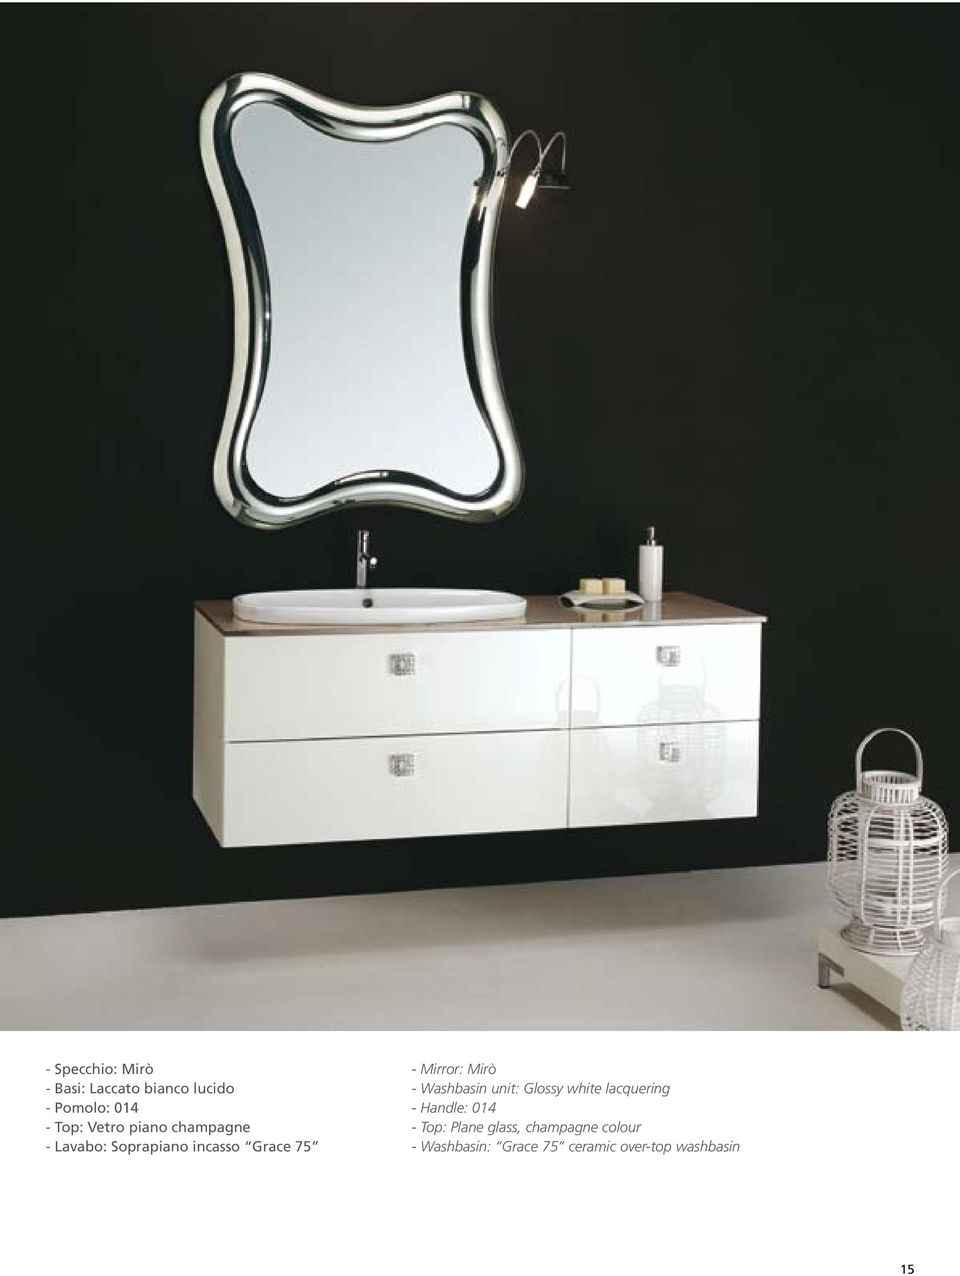 Mirò - Washbasin unit: Glossy white lacquering - Handle: 014 - Top: